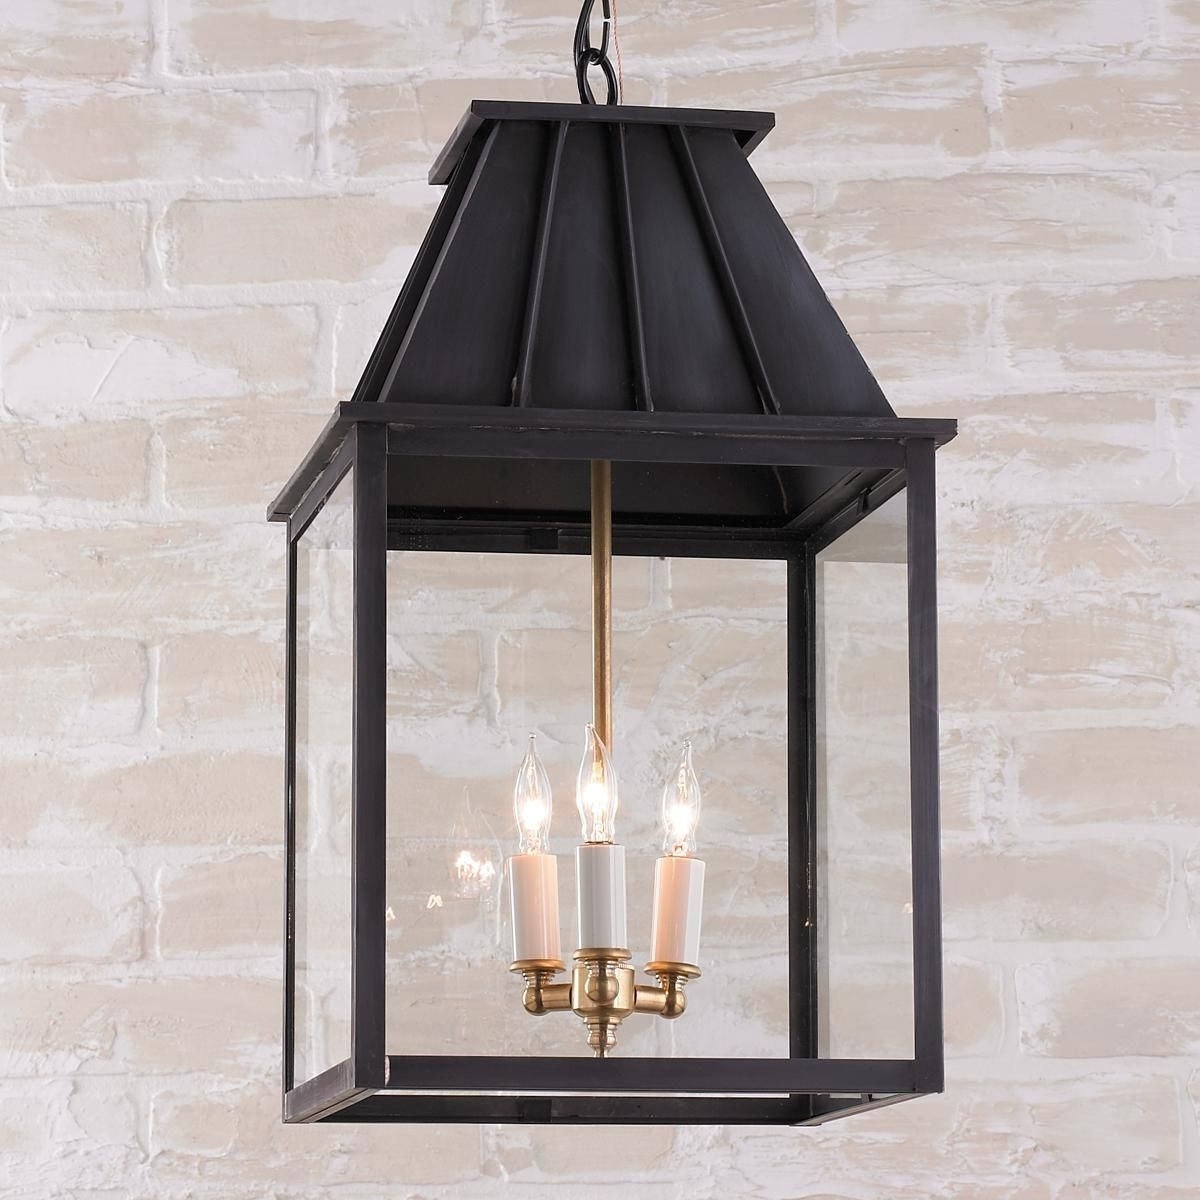 2018 Mansard Style Outdoor Hanging Lantern (View 1 of 20)